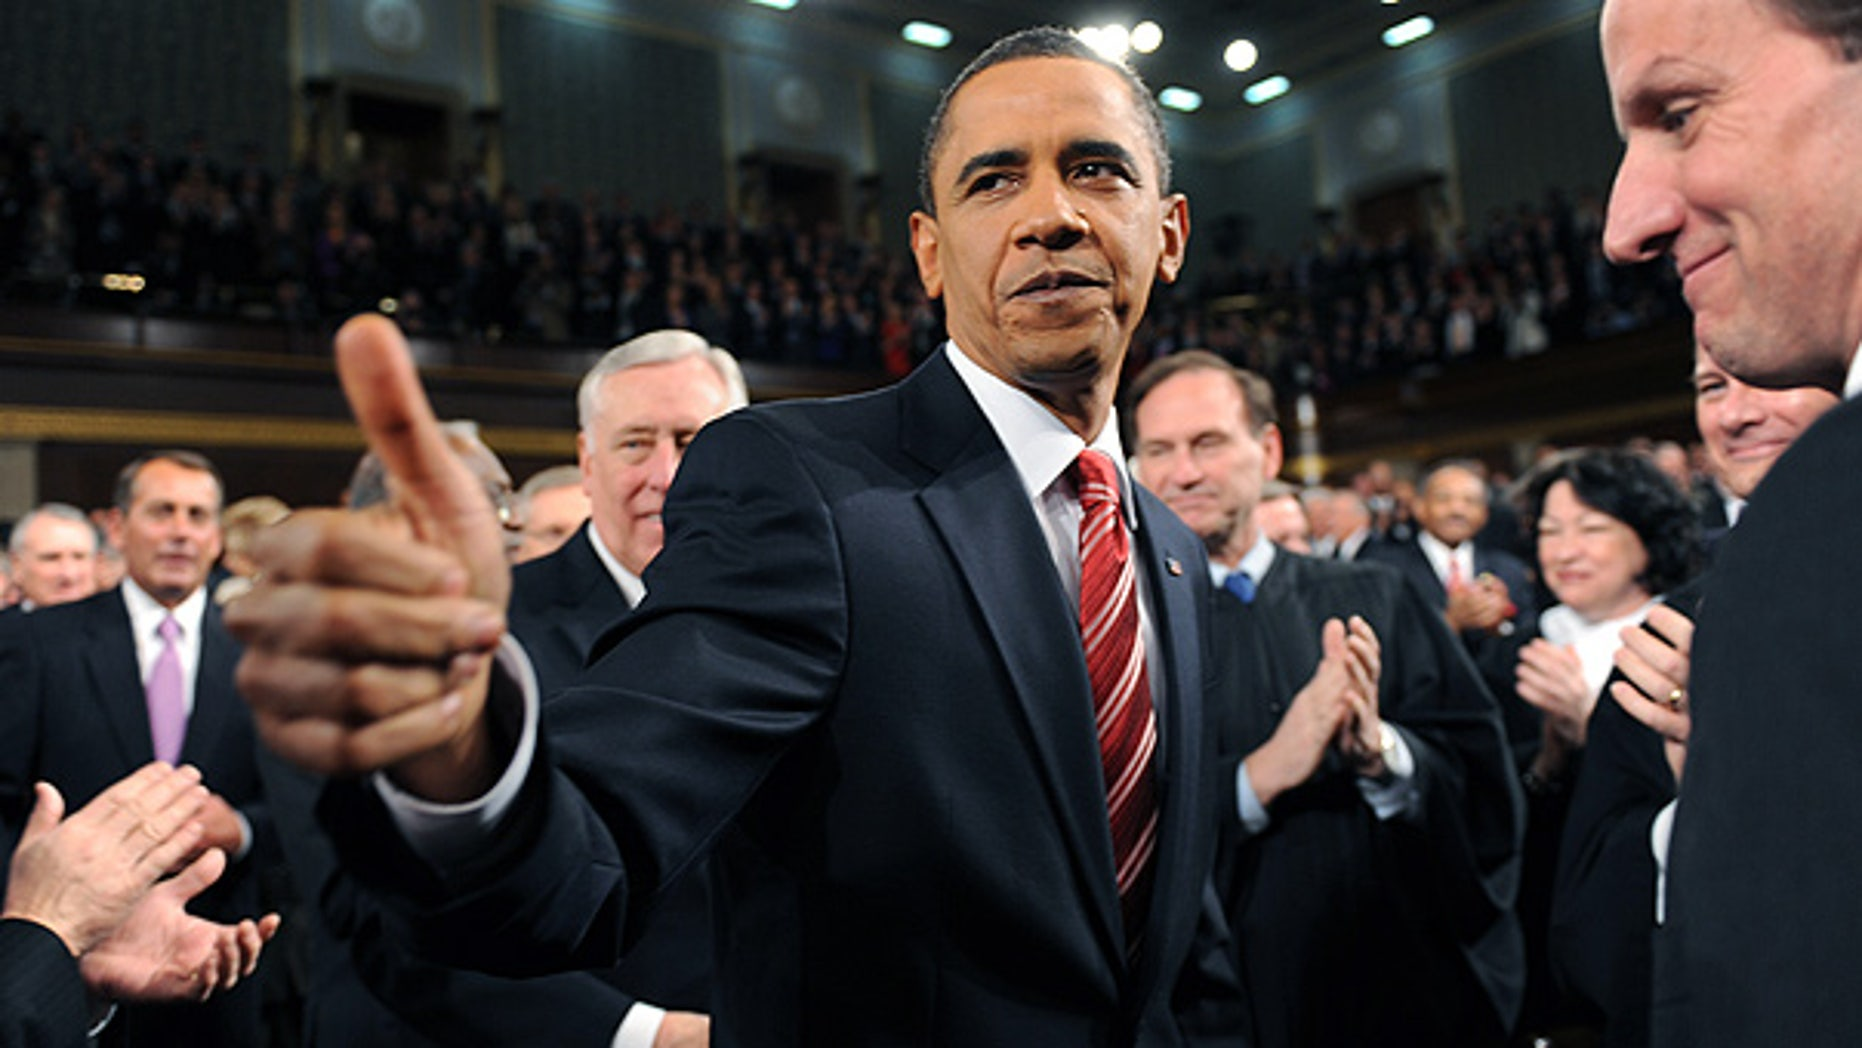 Jan. 27: President Obama greets members of Congress on his way to deliver the State of the Union.